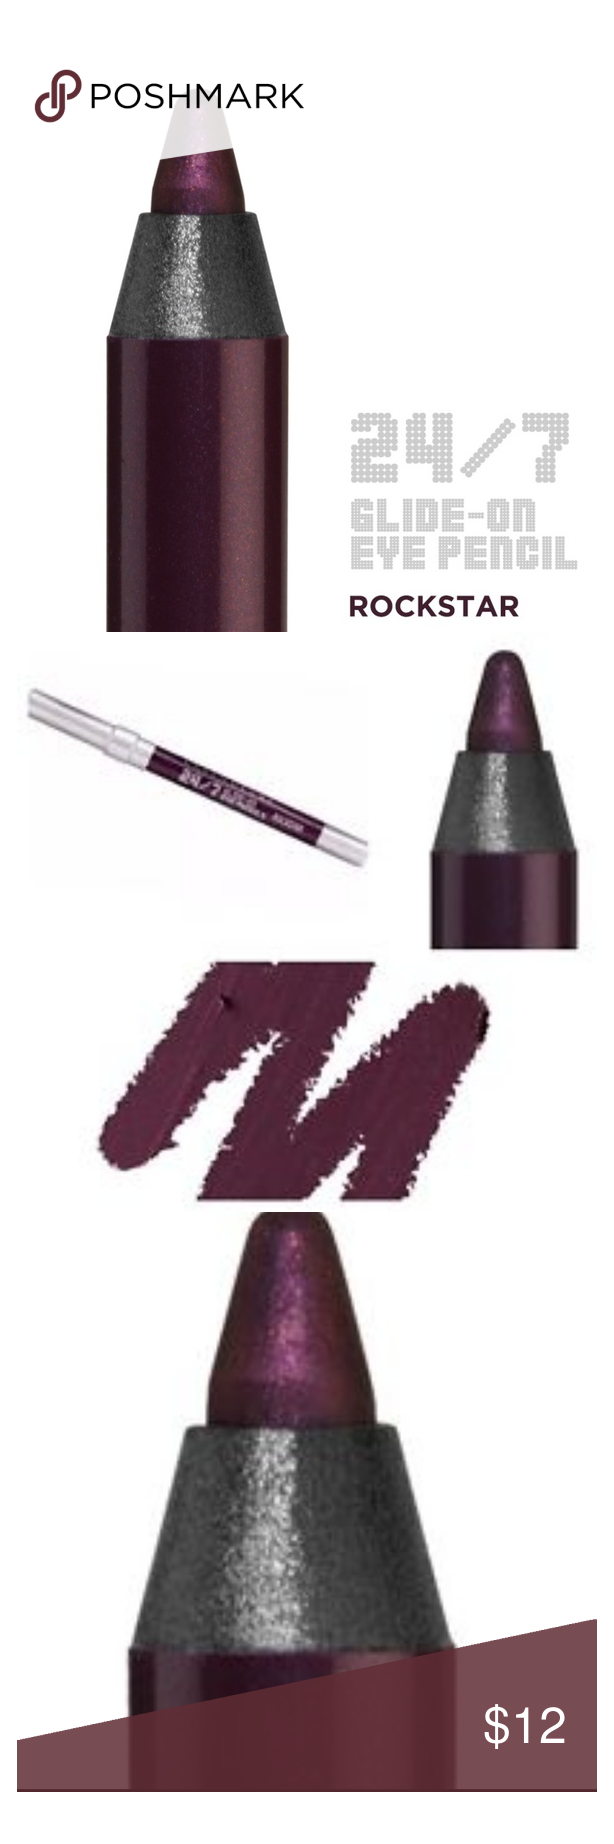 Google Image Result For Http Www Mogollon Ny Com New Files Gimgs 80 Picture 16 Png Best Makeup Brands Urban Decay Cosmetics Makeup Brands